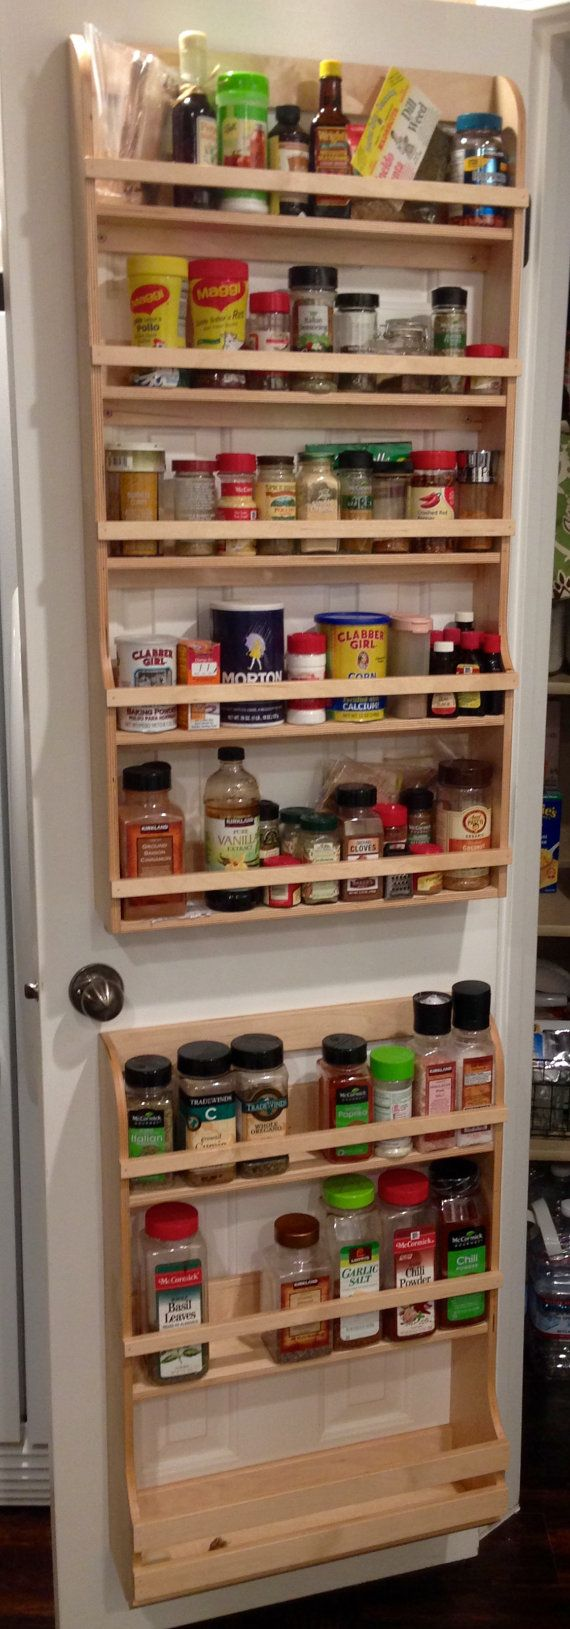 Pantry Door Spice Rack With Over The Door Spice Rack